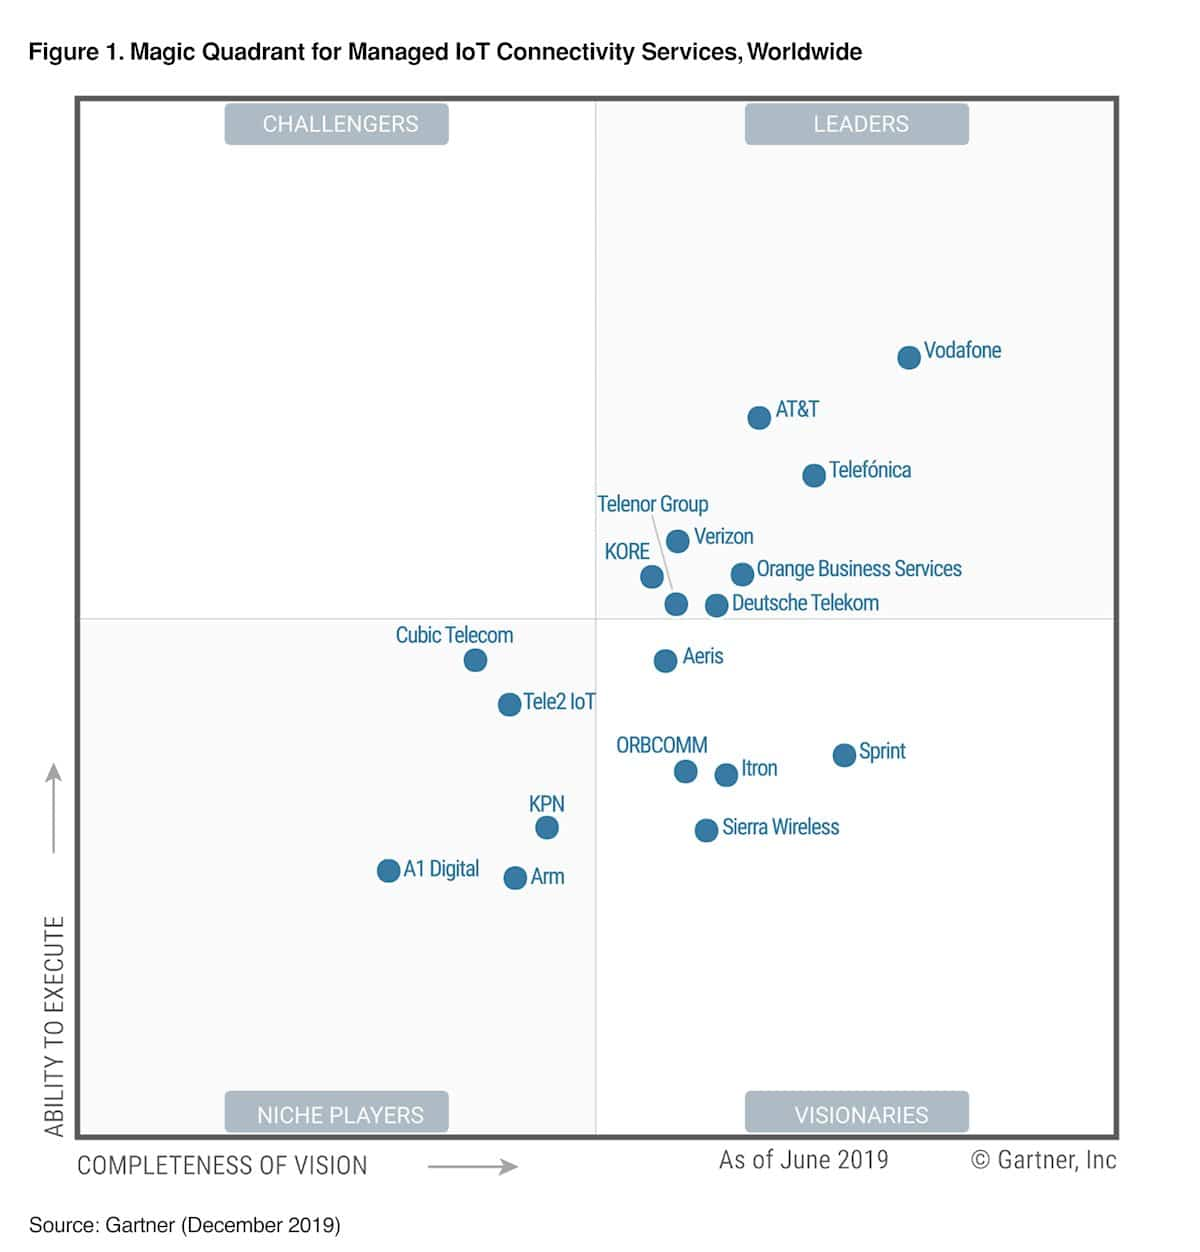 magic quadrant for managed iot connectivity services worldwide